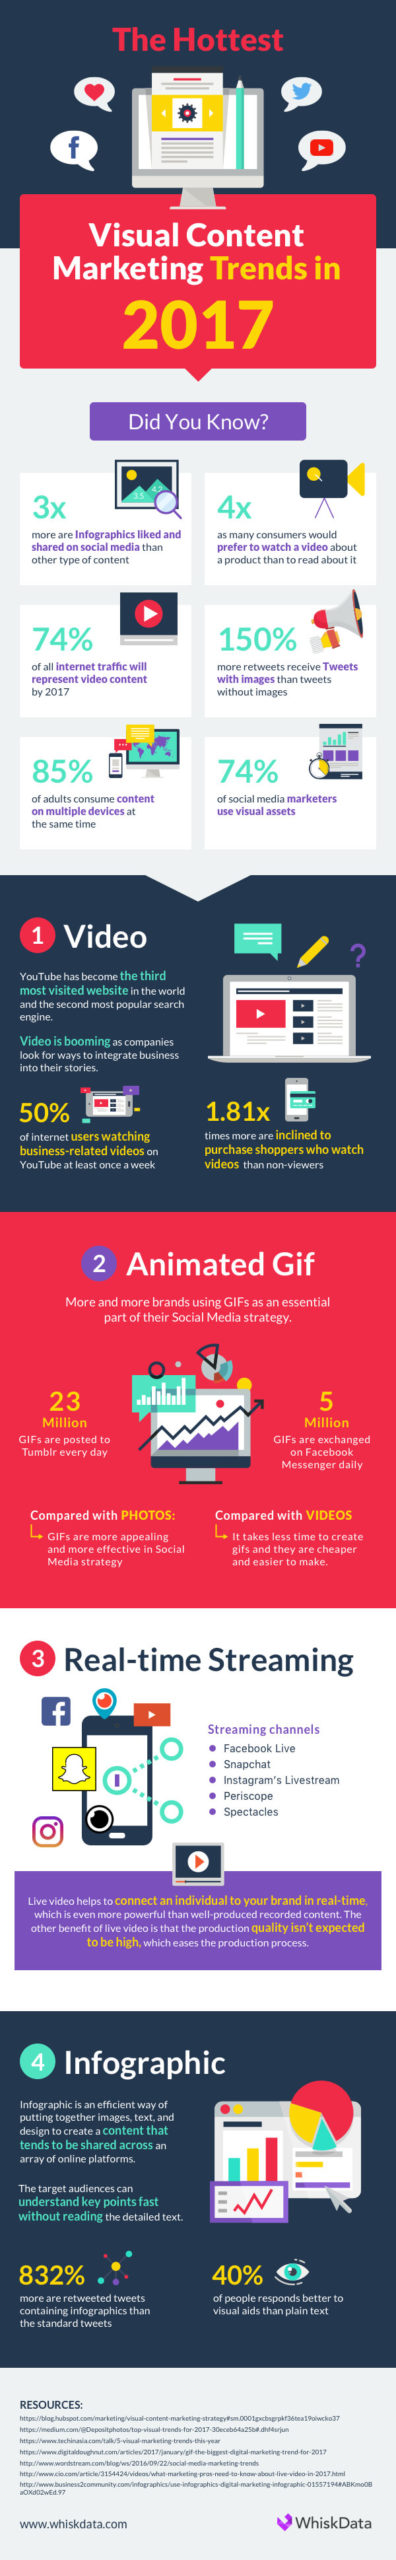 visual content marketing trends infographic